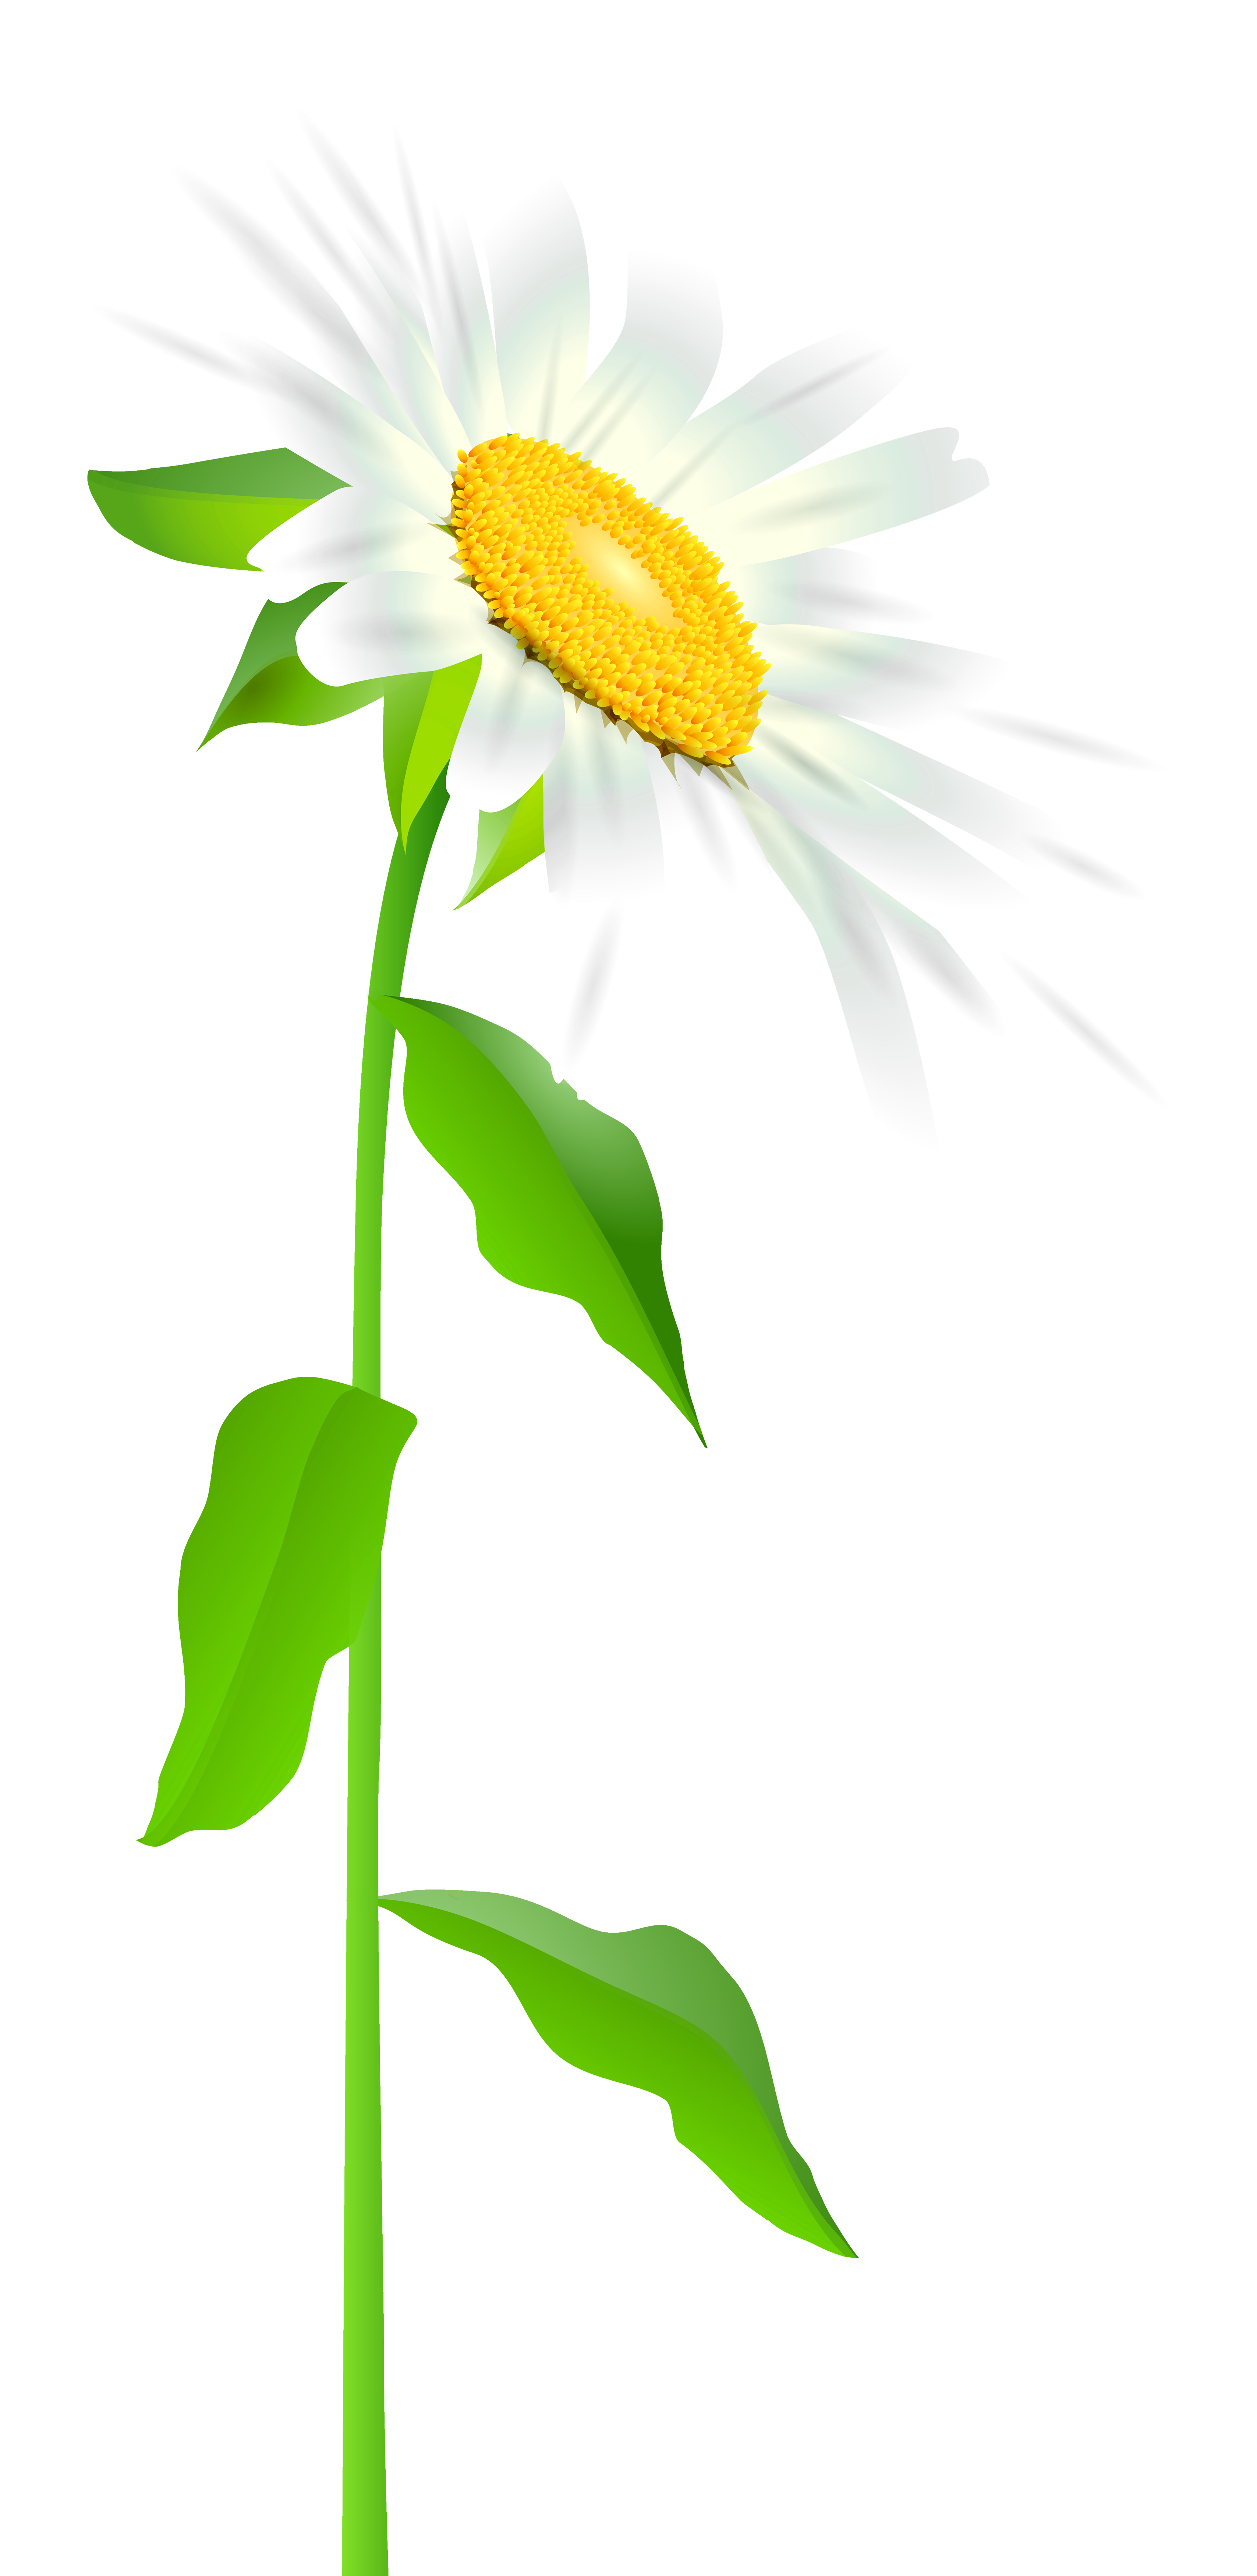 Daisy clipart long stem flower. With transparent png clip